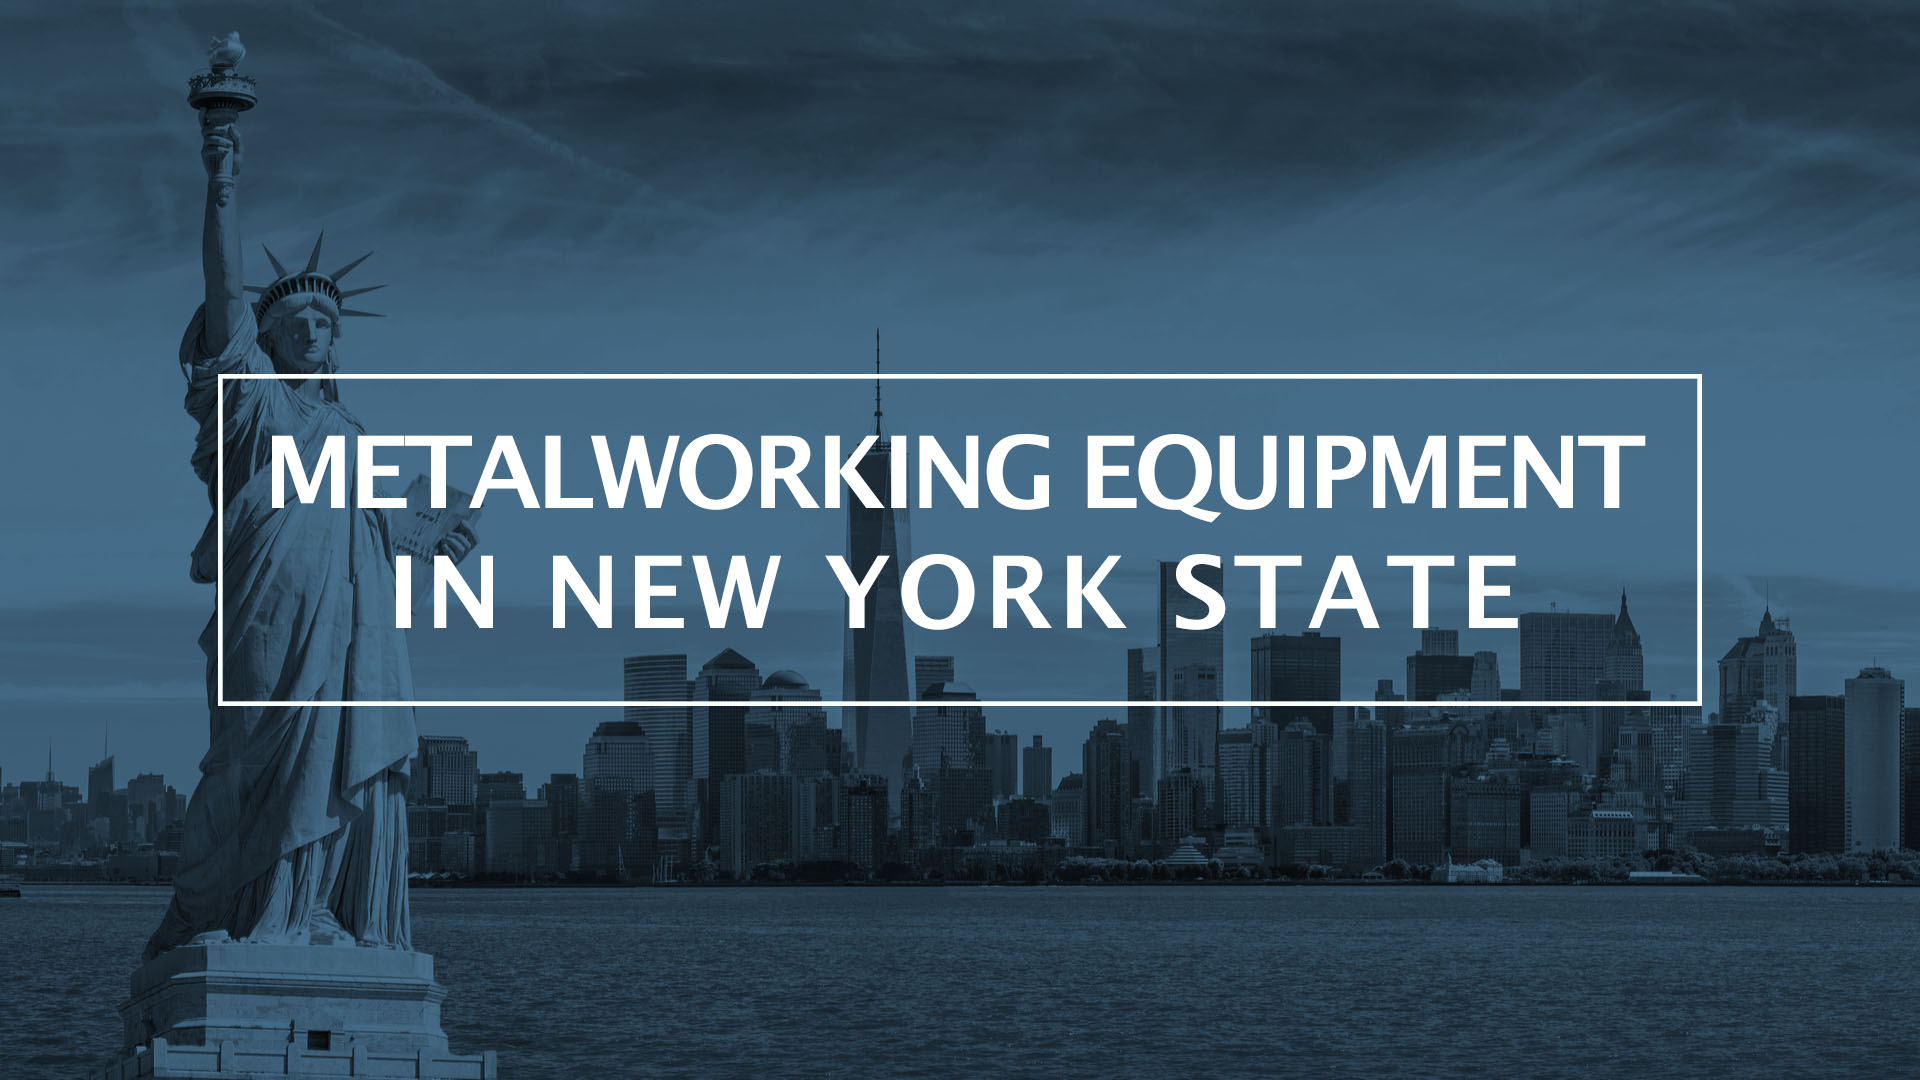 Selling Metalworking Equipment In New York